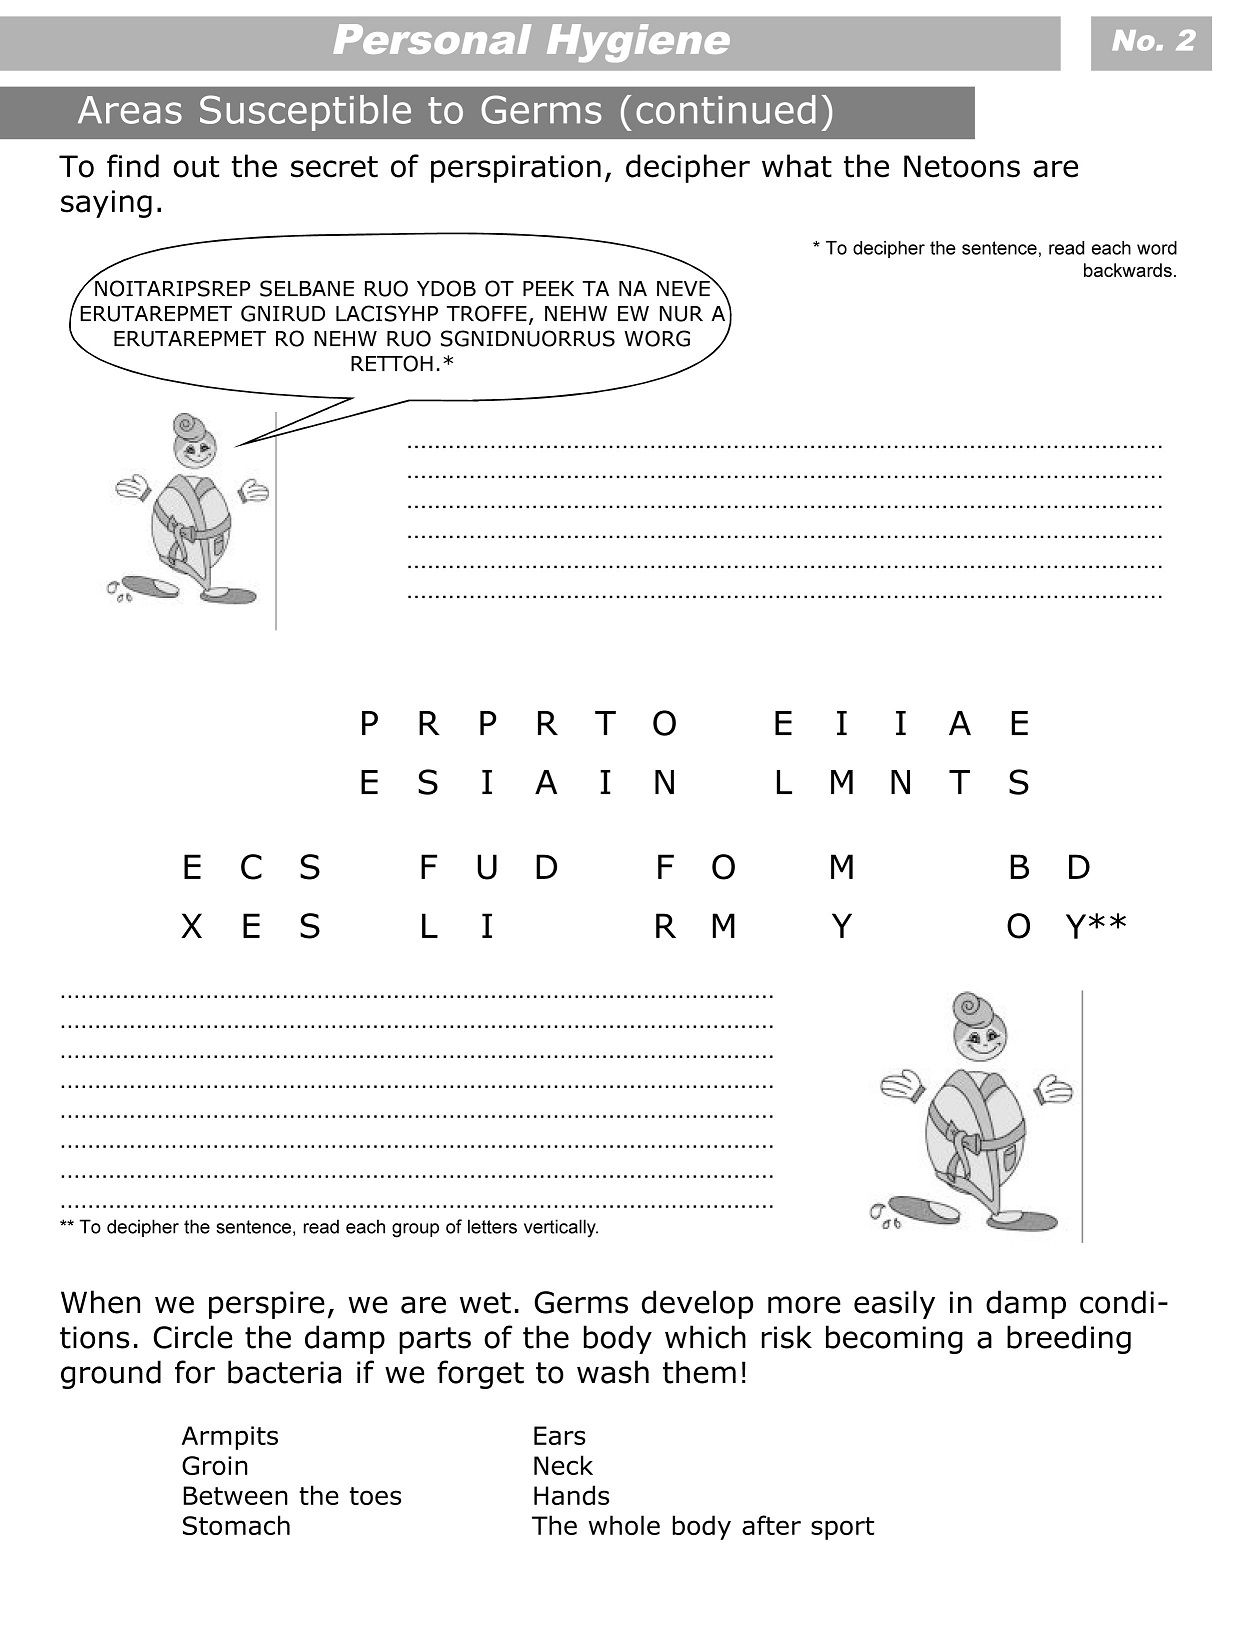 Personal Hygiene Worksheets For Kids Level 3 2 Girls Guards In